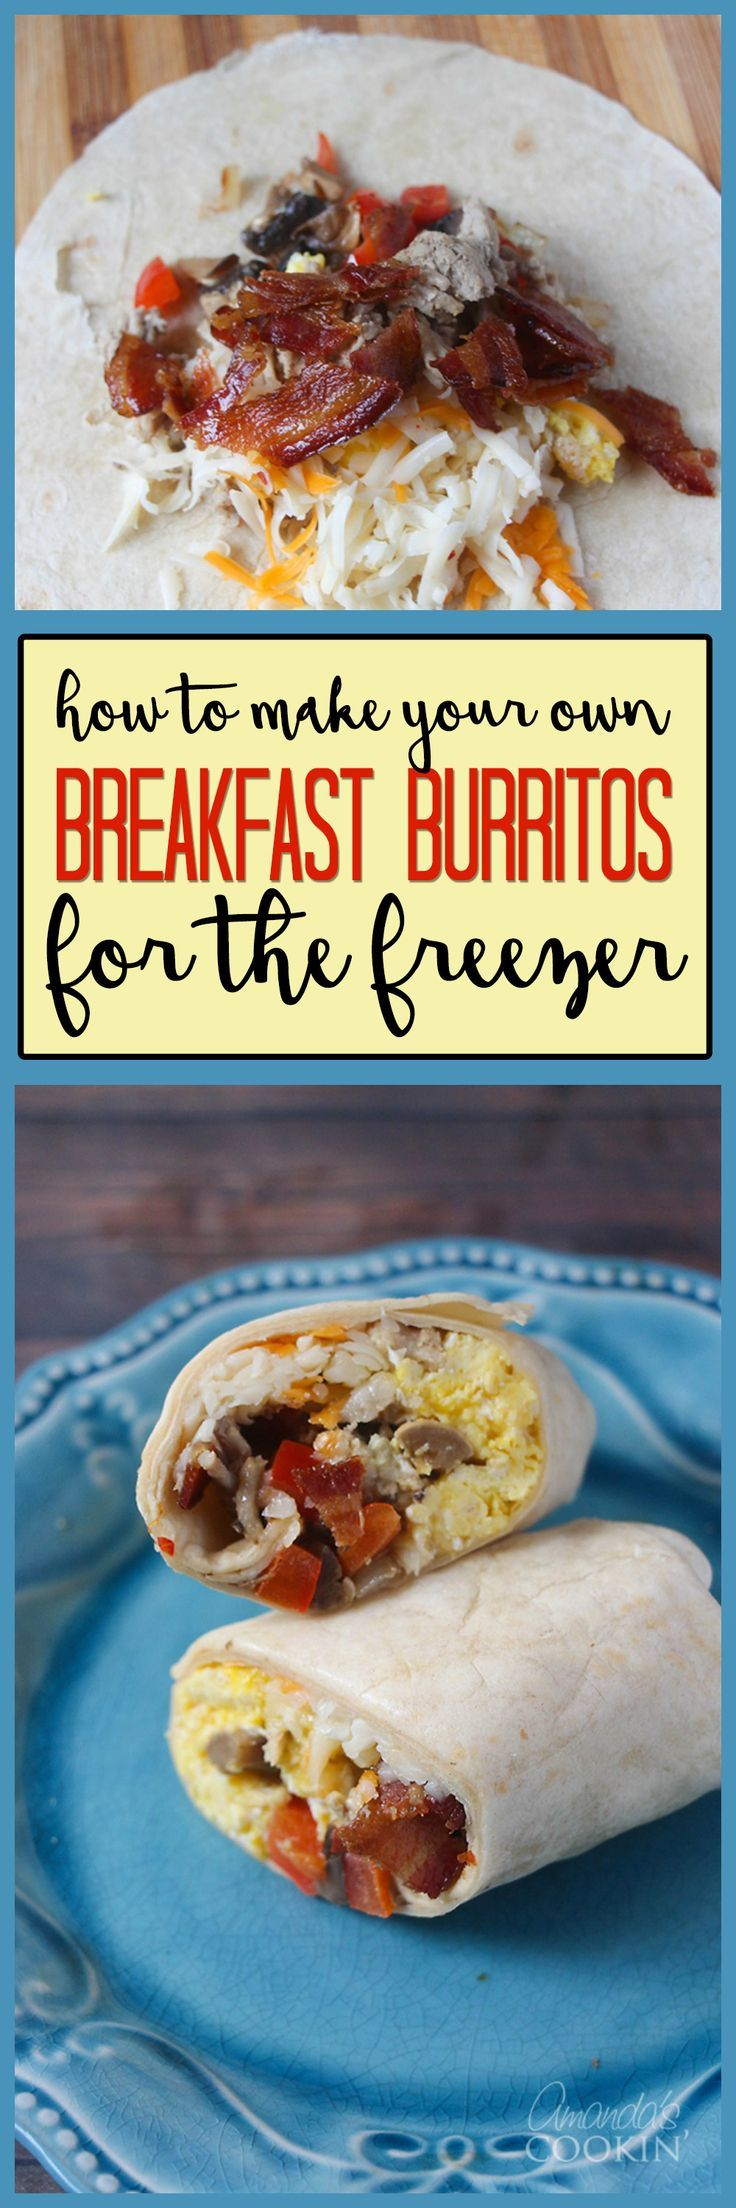 I make these breakfast burritos to freeze so we make sure we eat before running out the door. These are a great breakfast option for a fast paced life!